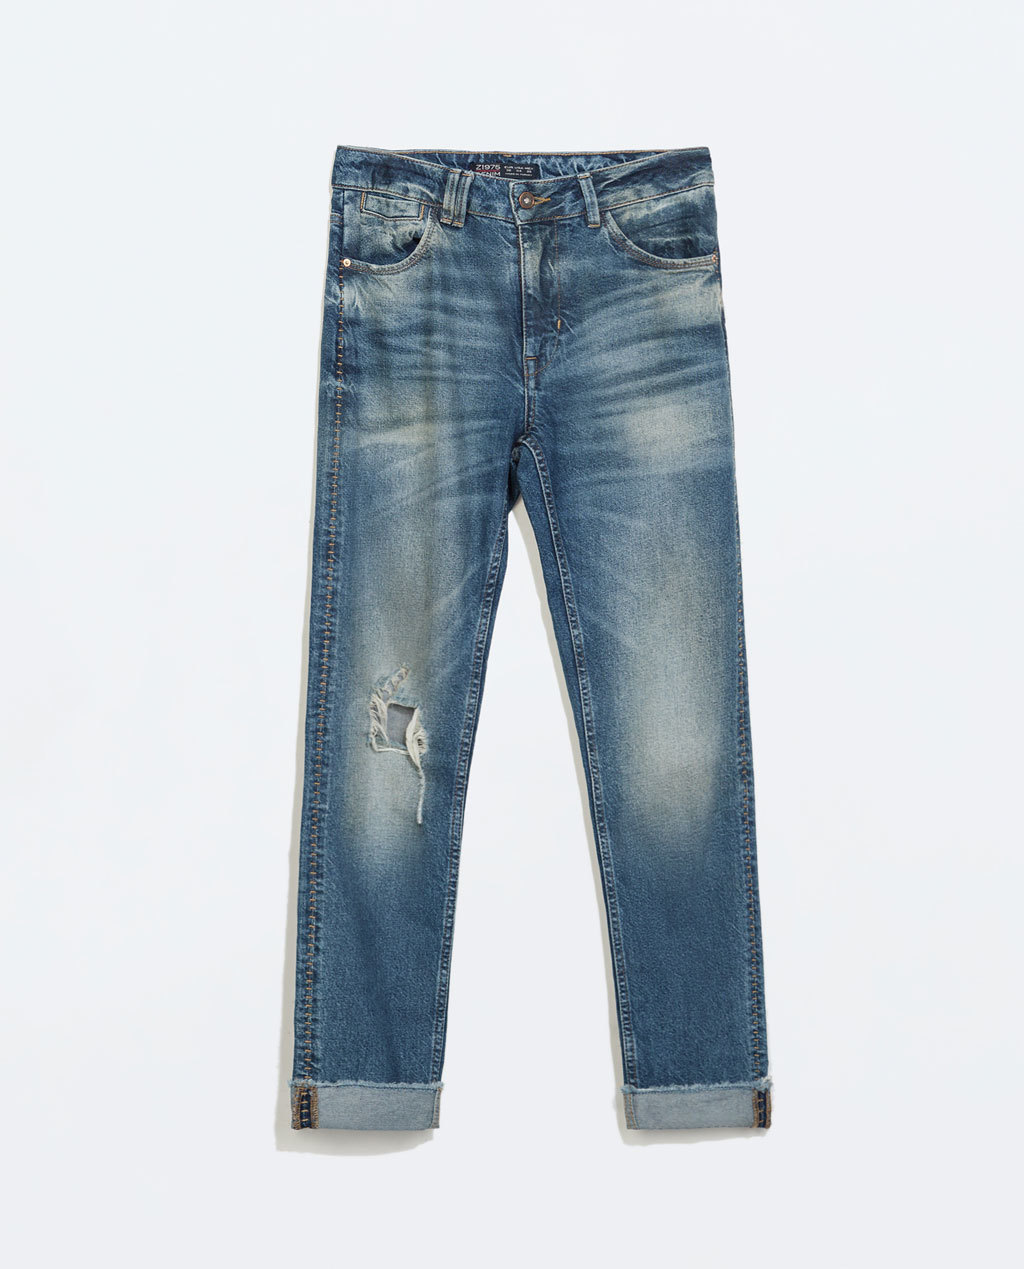 Mom Jeans - style: straight leg; length: standard; pattern: plain; pocket detail: traditional 5 pocket; waist: mid/regular rise; predominant colour: denim; occasions: casual; fibres: cotton - stretch; jeans detail: whiskering, shading down centre of thigh, washed/faded; texture group: denim; pattern type: fabric; season: a/w 2014